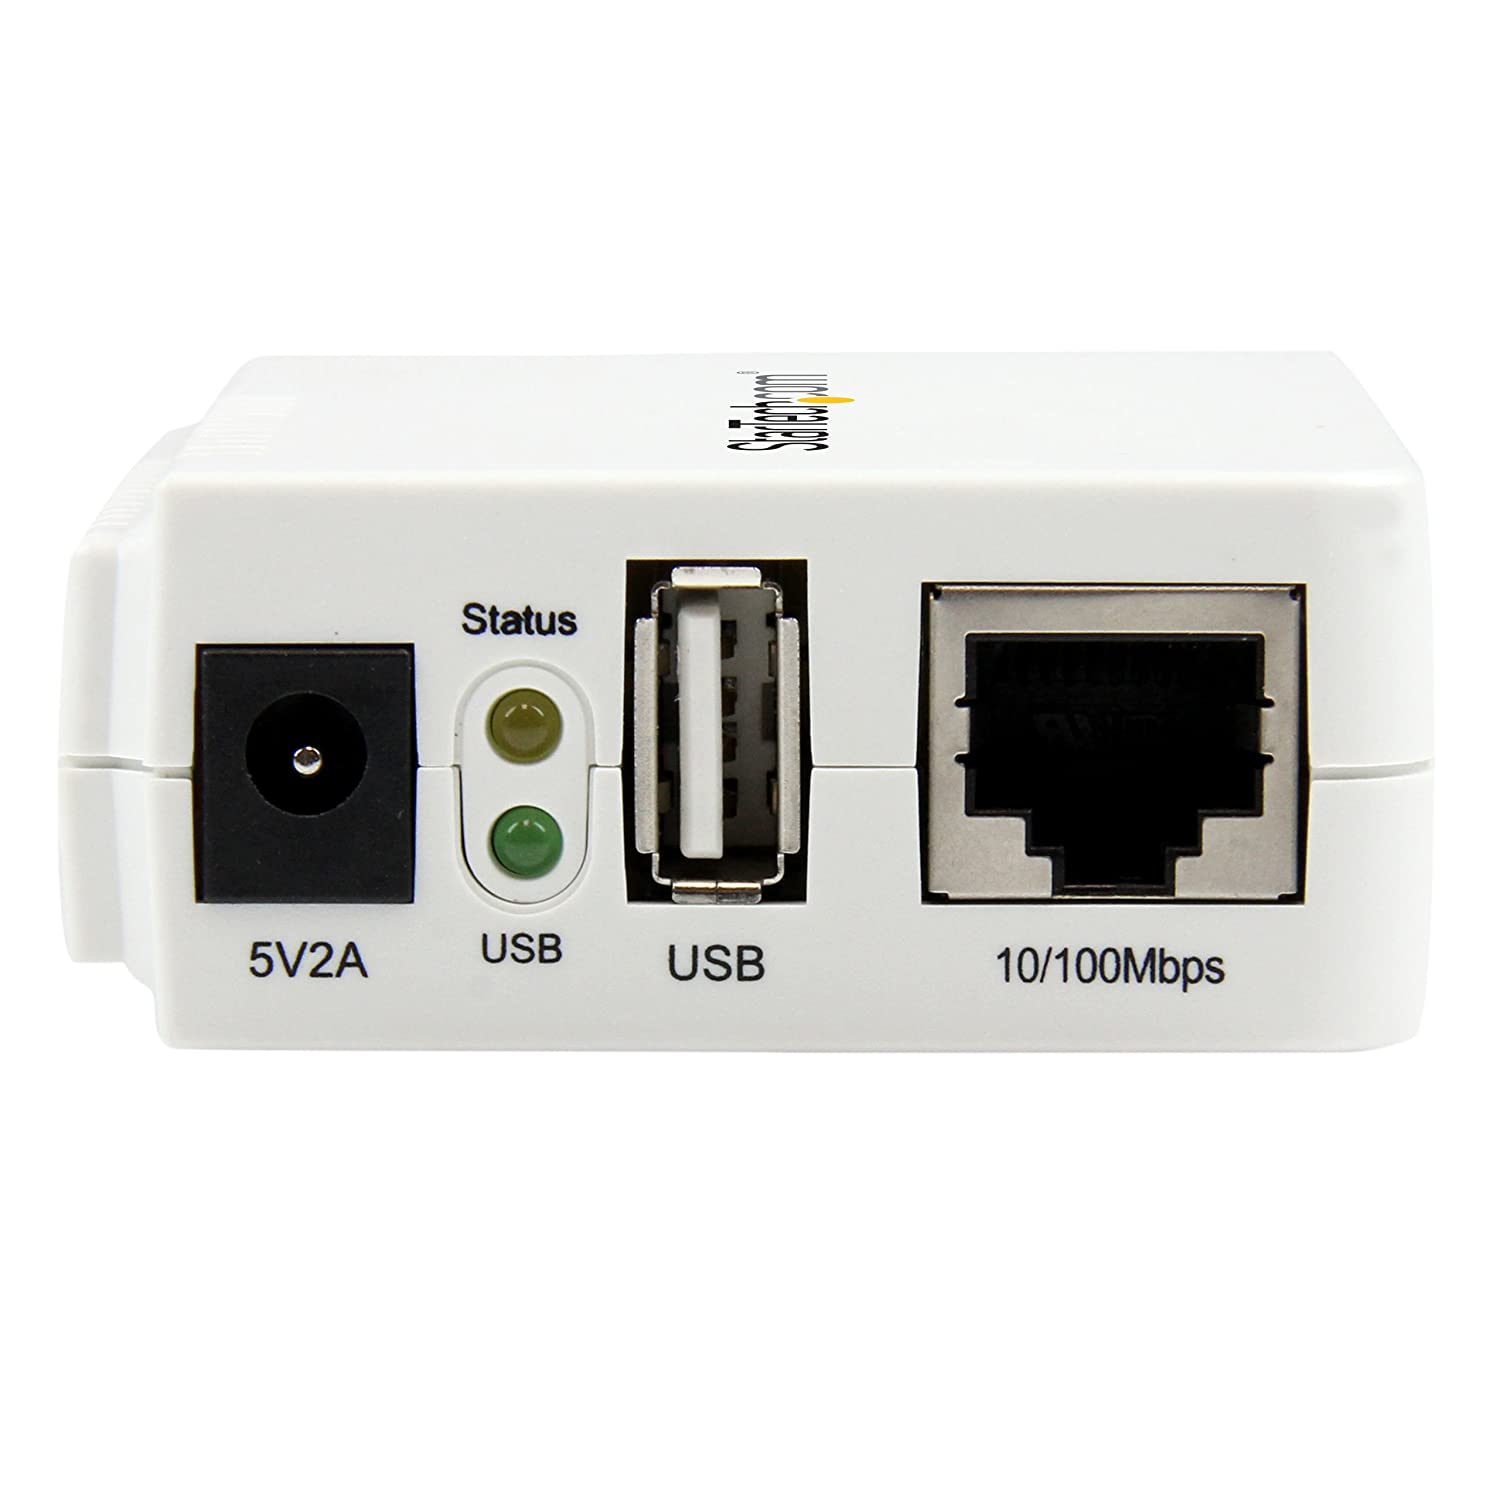 Amazon.com: 1 Port USB Wireless N Network Print Server with 10/100 ...